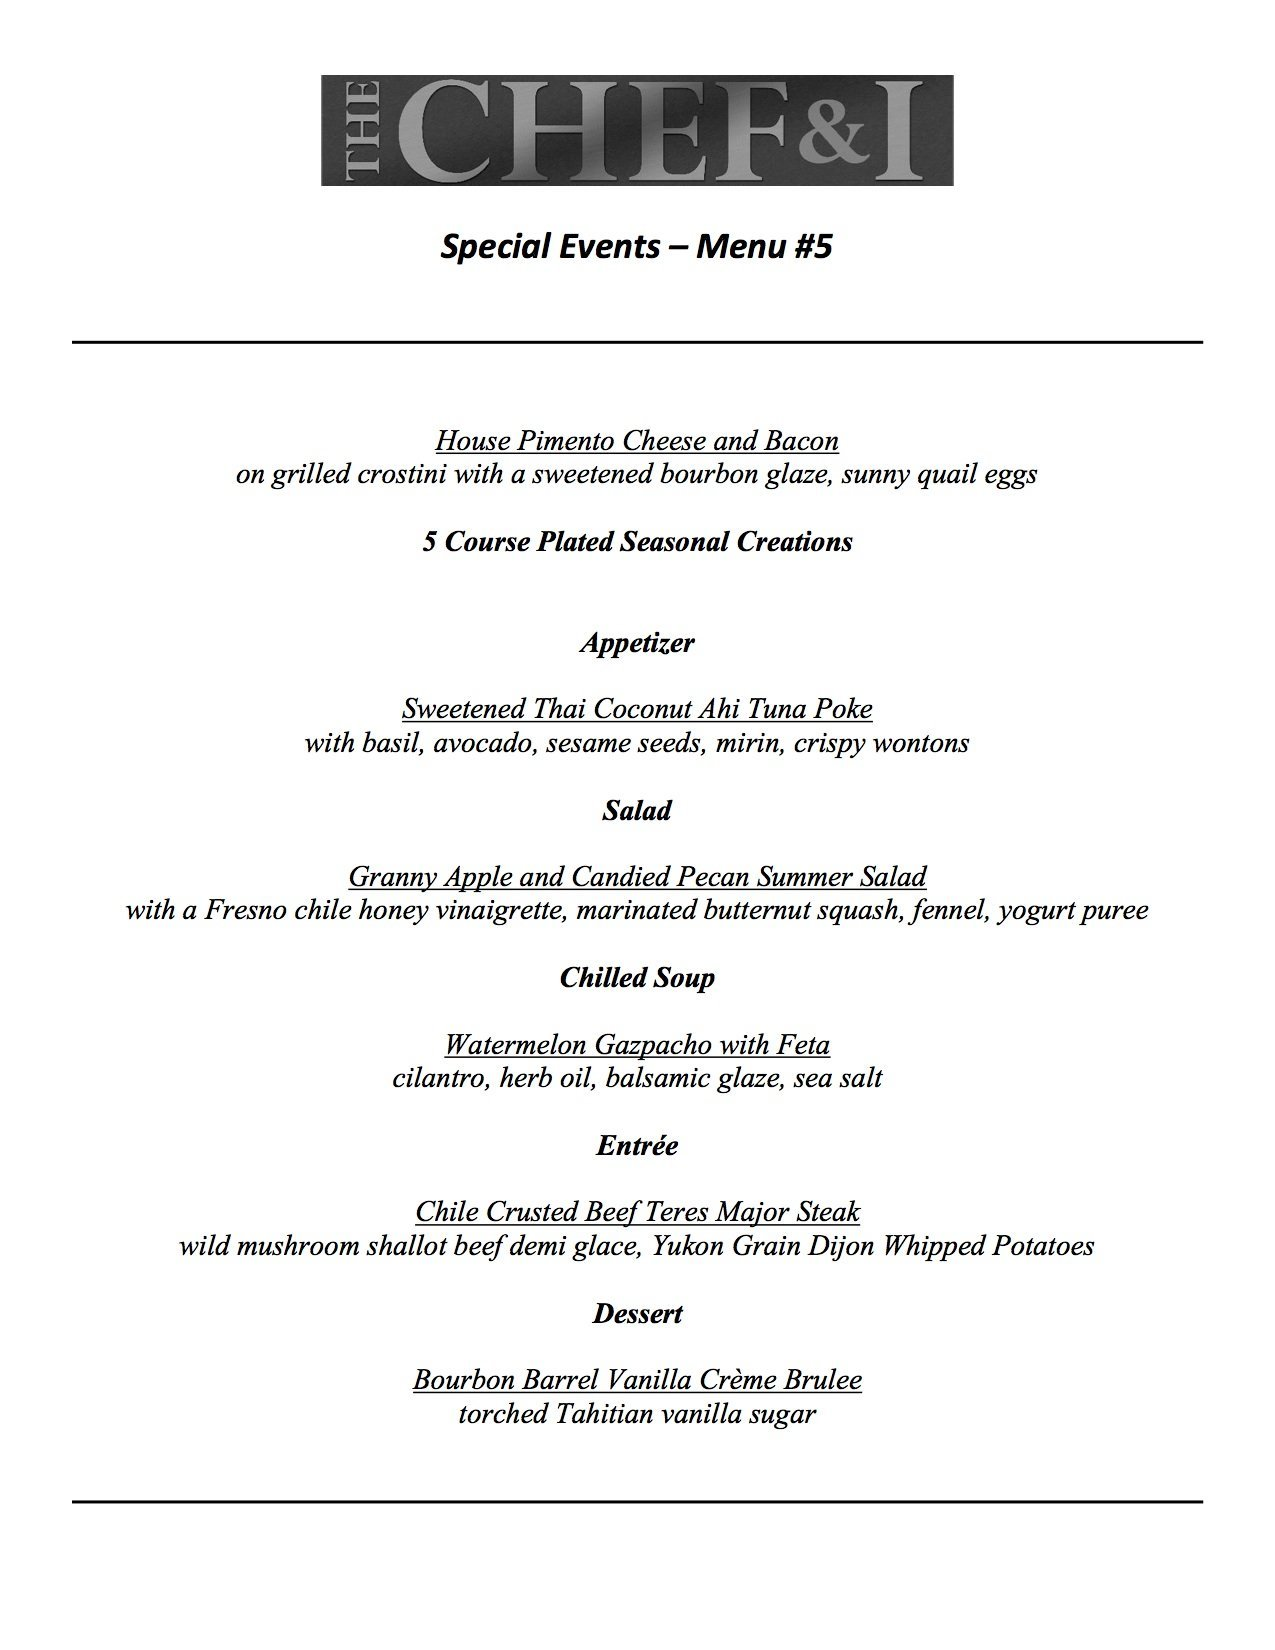 Special Events Menu 5